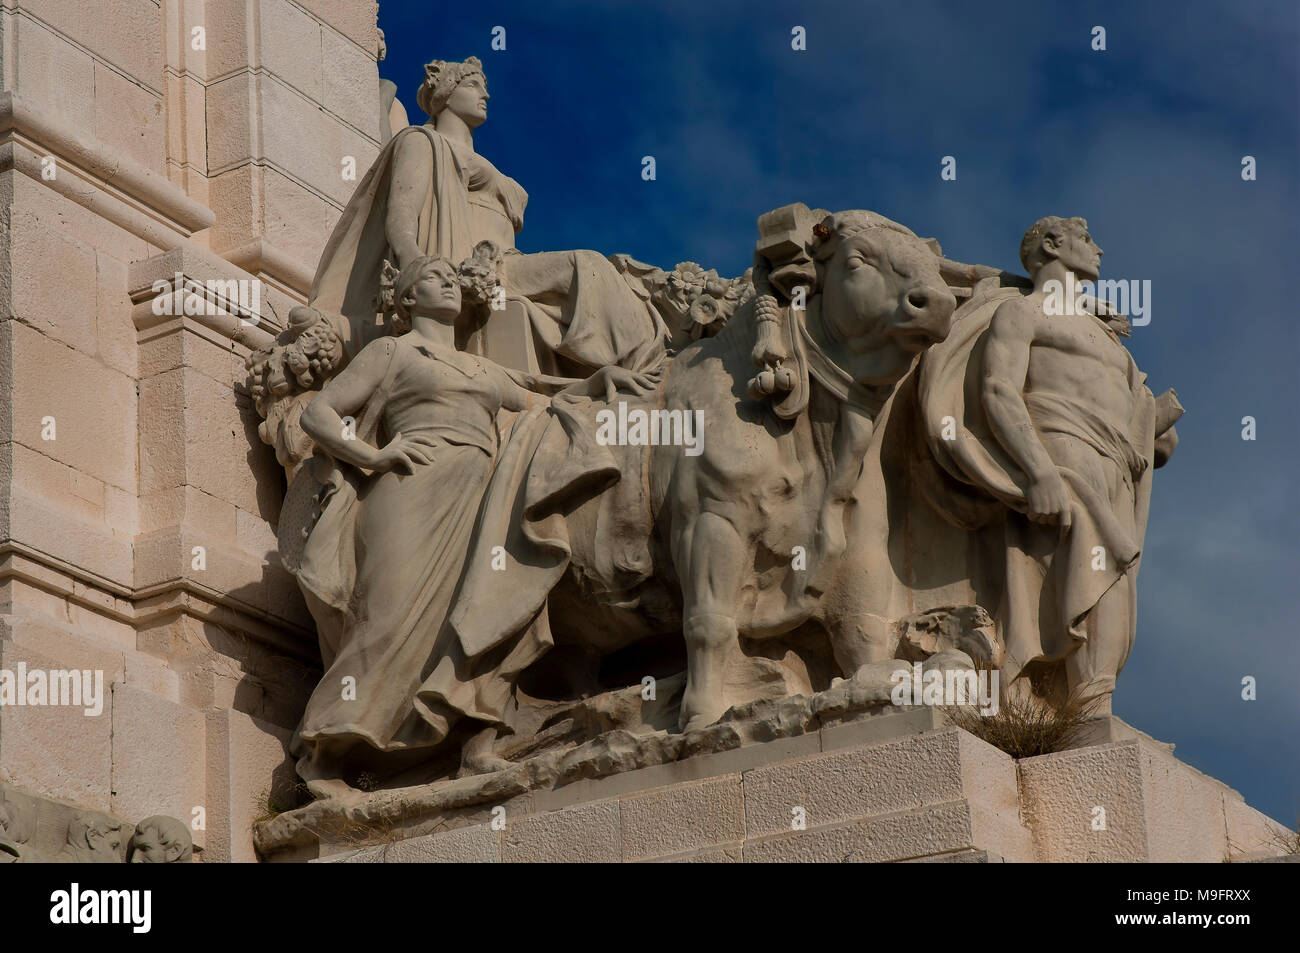 Monument to the Spanish Constitution of the year 1812 - Sculptural group of the allegory of agriculture. Cadiz. Region of Andalusia. Spain. Europe - Stock Image